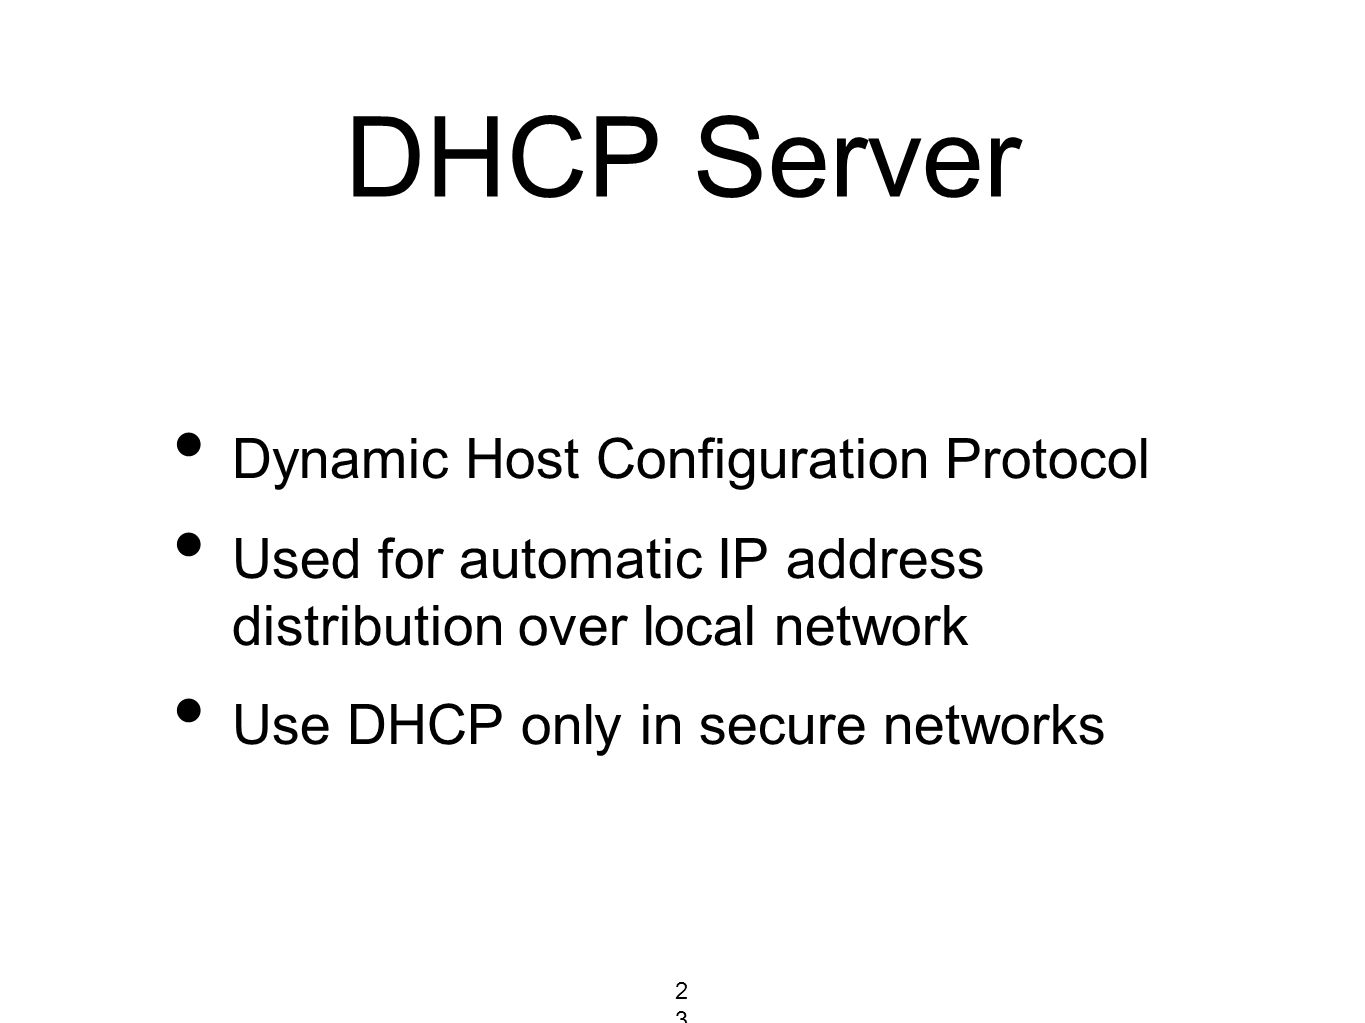 DHCP Server Dynamic Host Configuration Protocol Used for automatic IP address distribution over local network Use DHCP only in secure networks 2372372